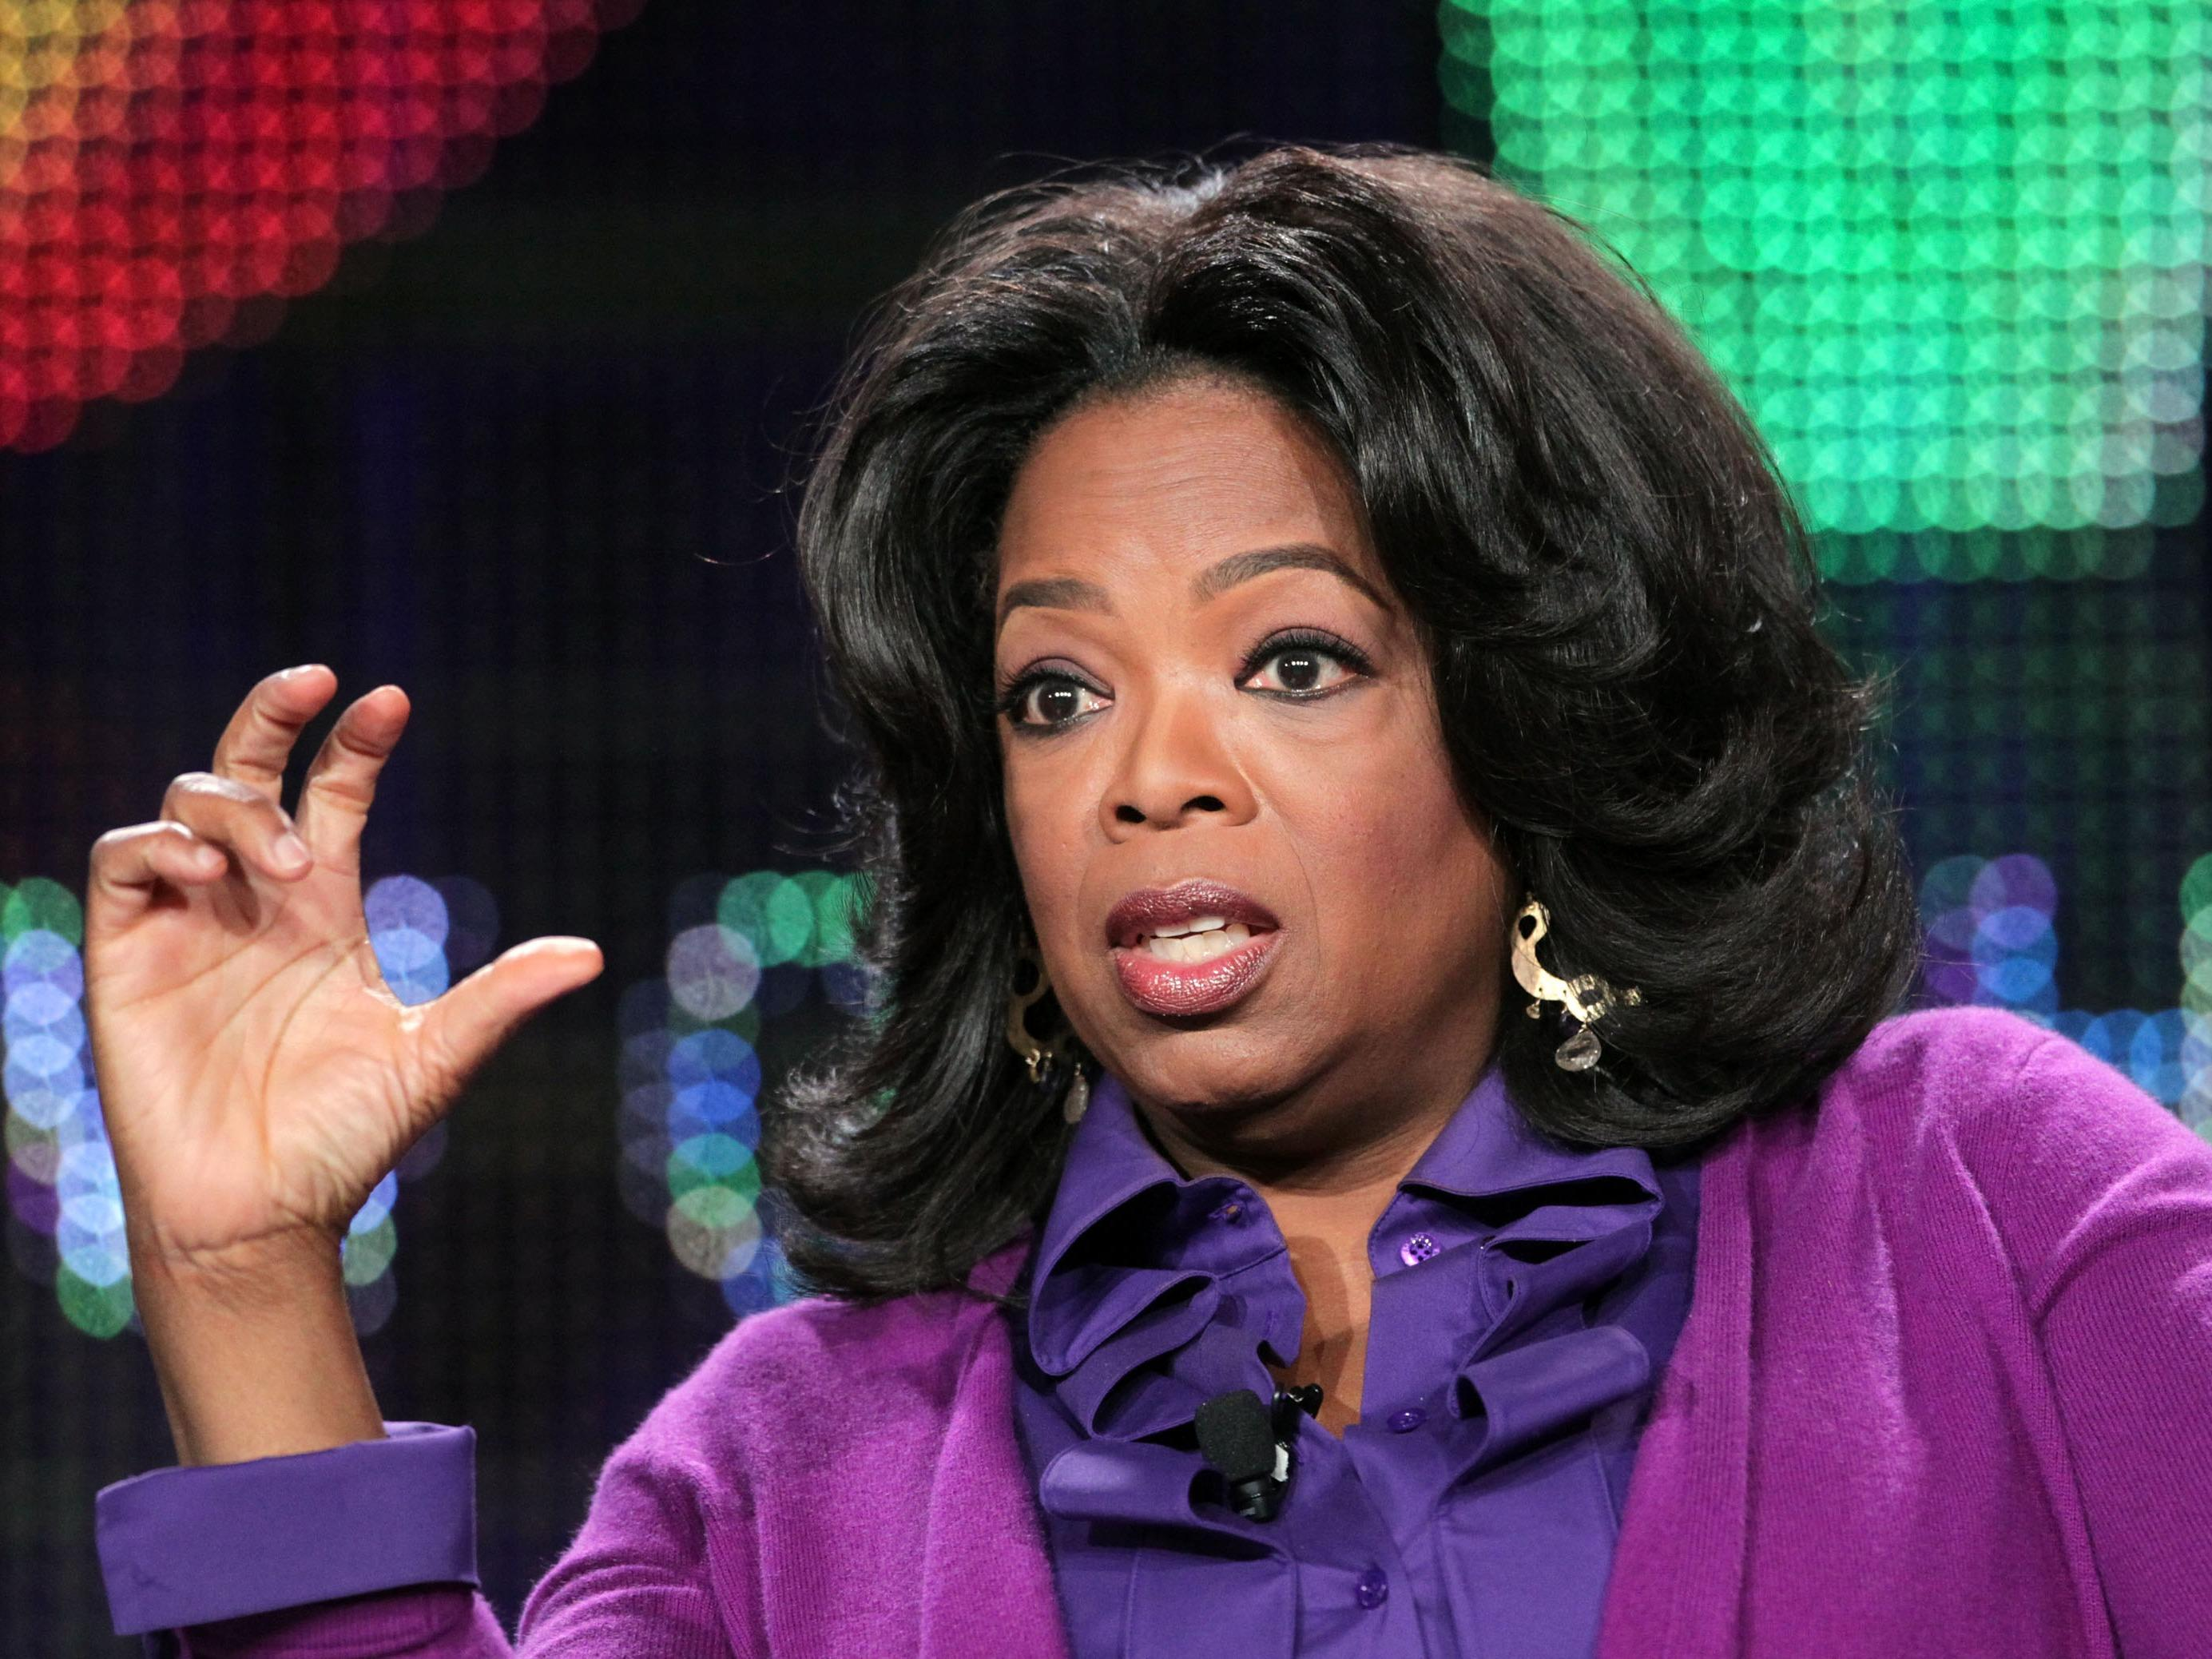 Oprah Winfrey hates meetings so much she once persuaded Coretta Scott King not to visit her